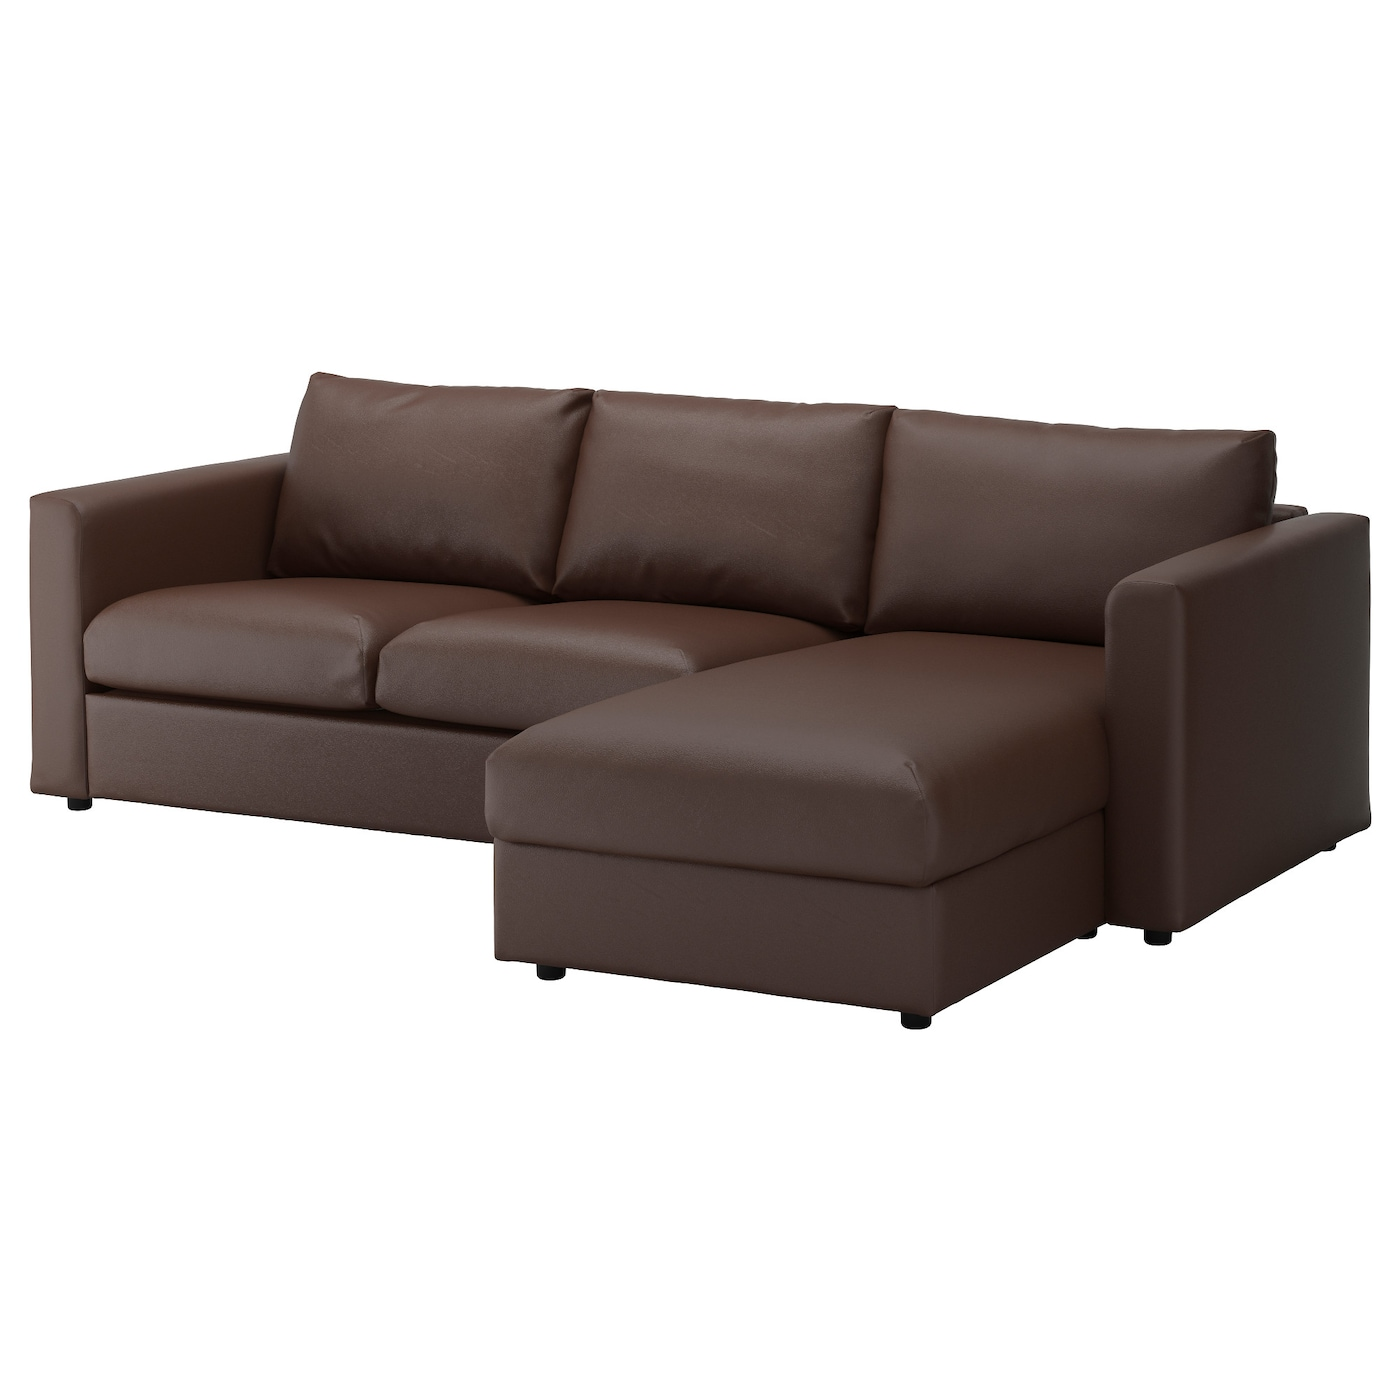 Vimle 3 seat sofa with chaise longue farsta dark brown ikea for Ikea couch planer